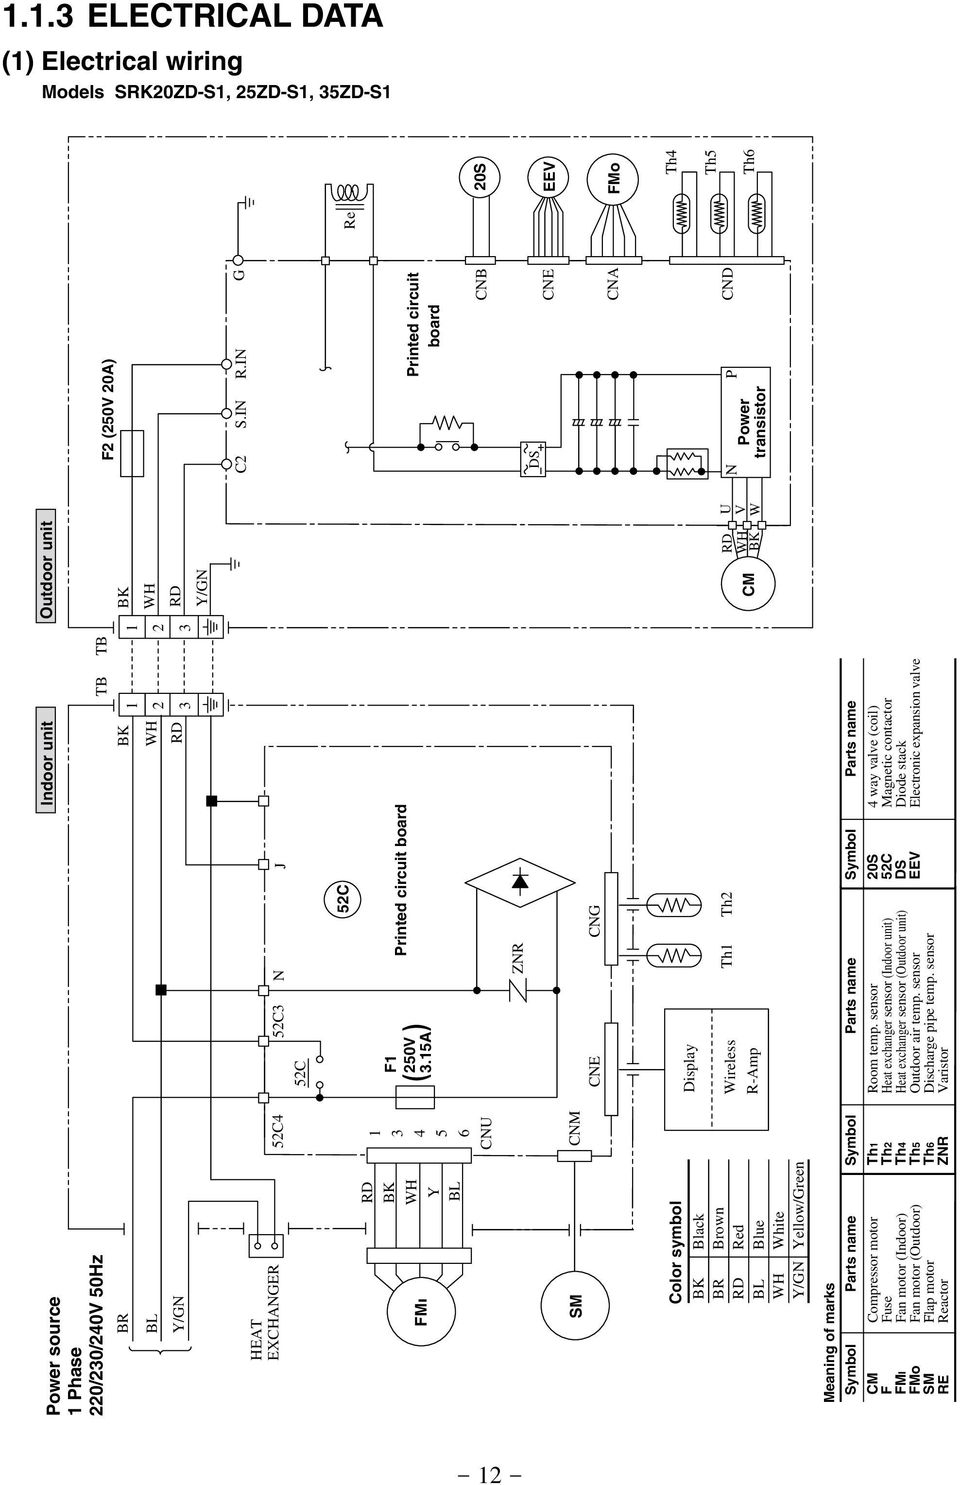 split system wiring diagrams for mitsubishi pkaa24 airtemp heat pump wiring diagram | free wiring diagram split system wiring diagram #11